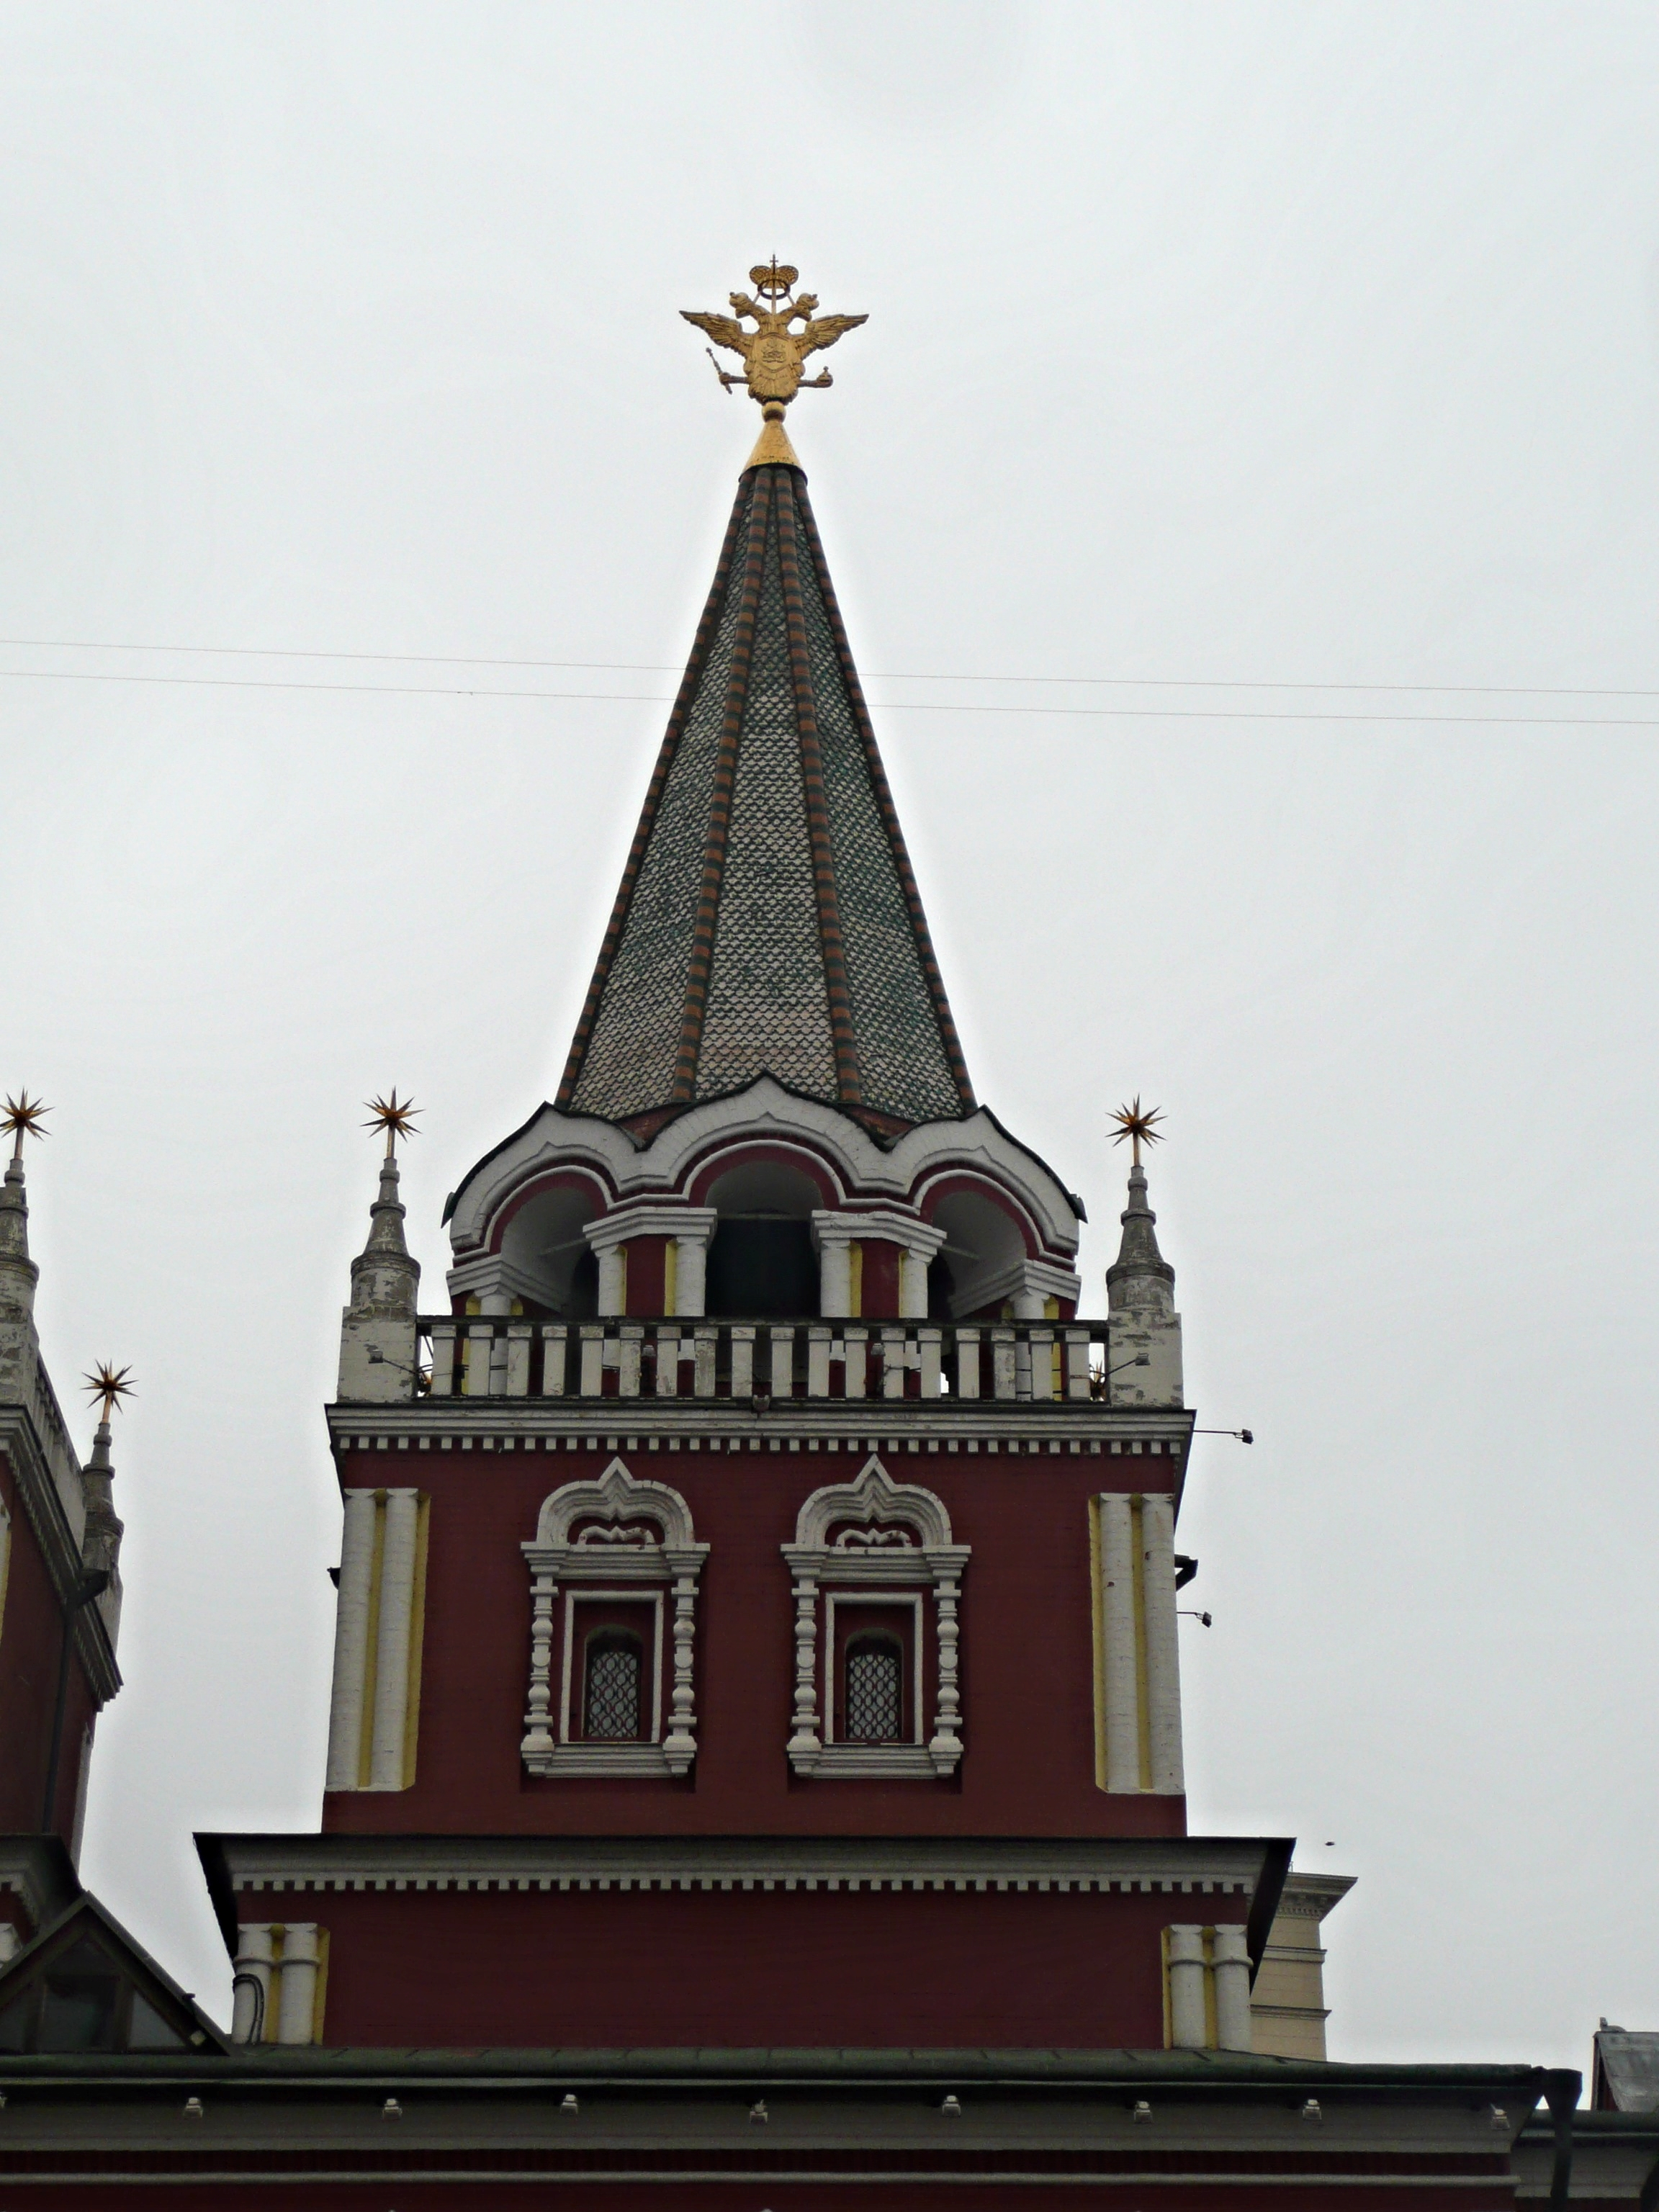 Spassky Tower of the Kremlin